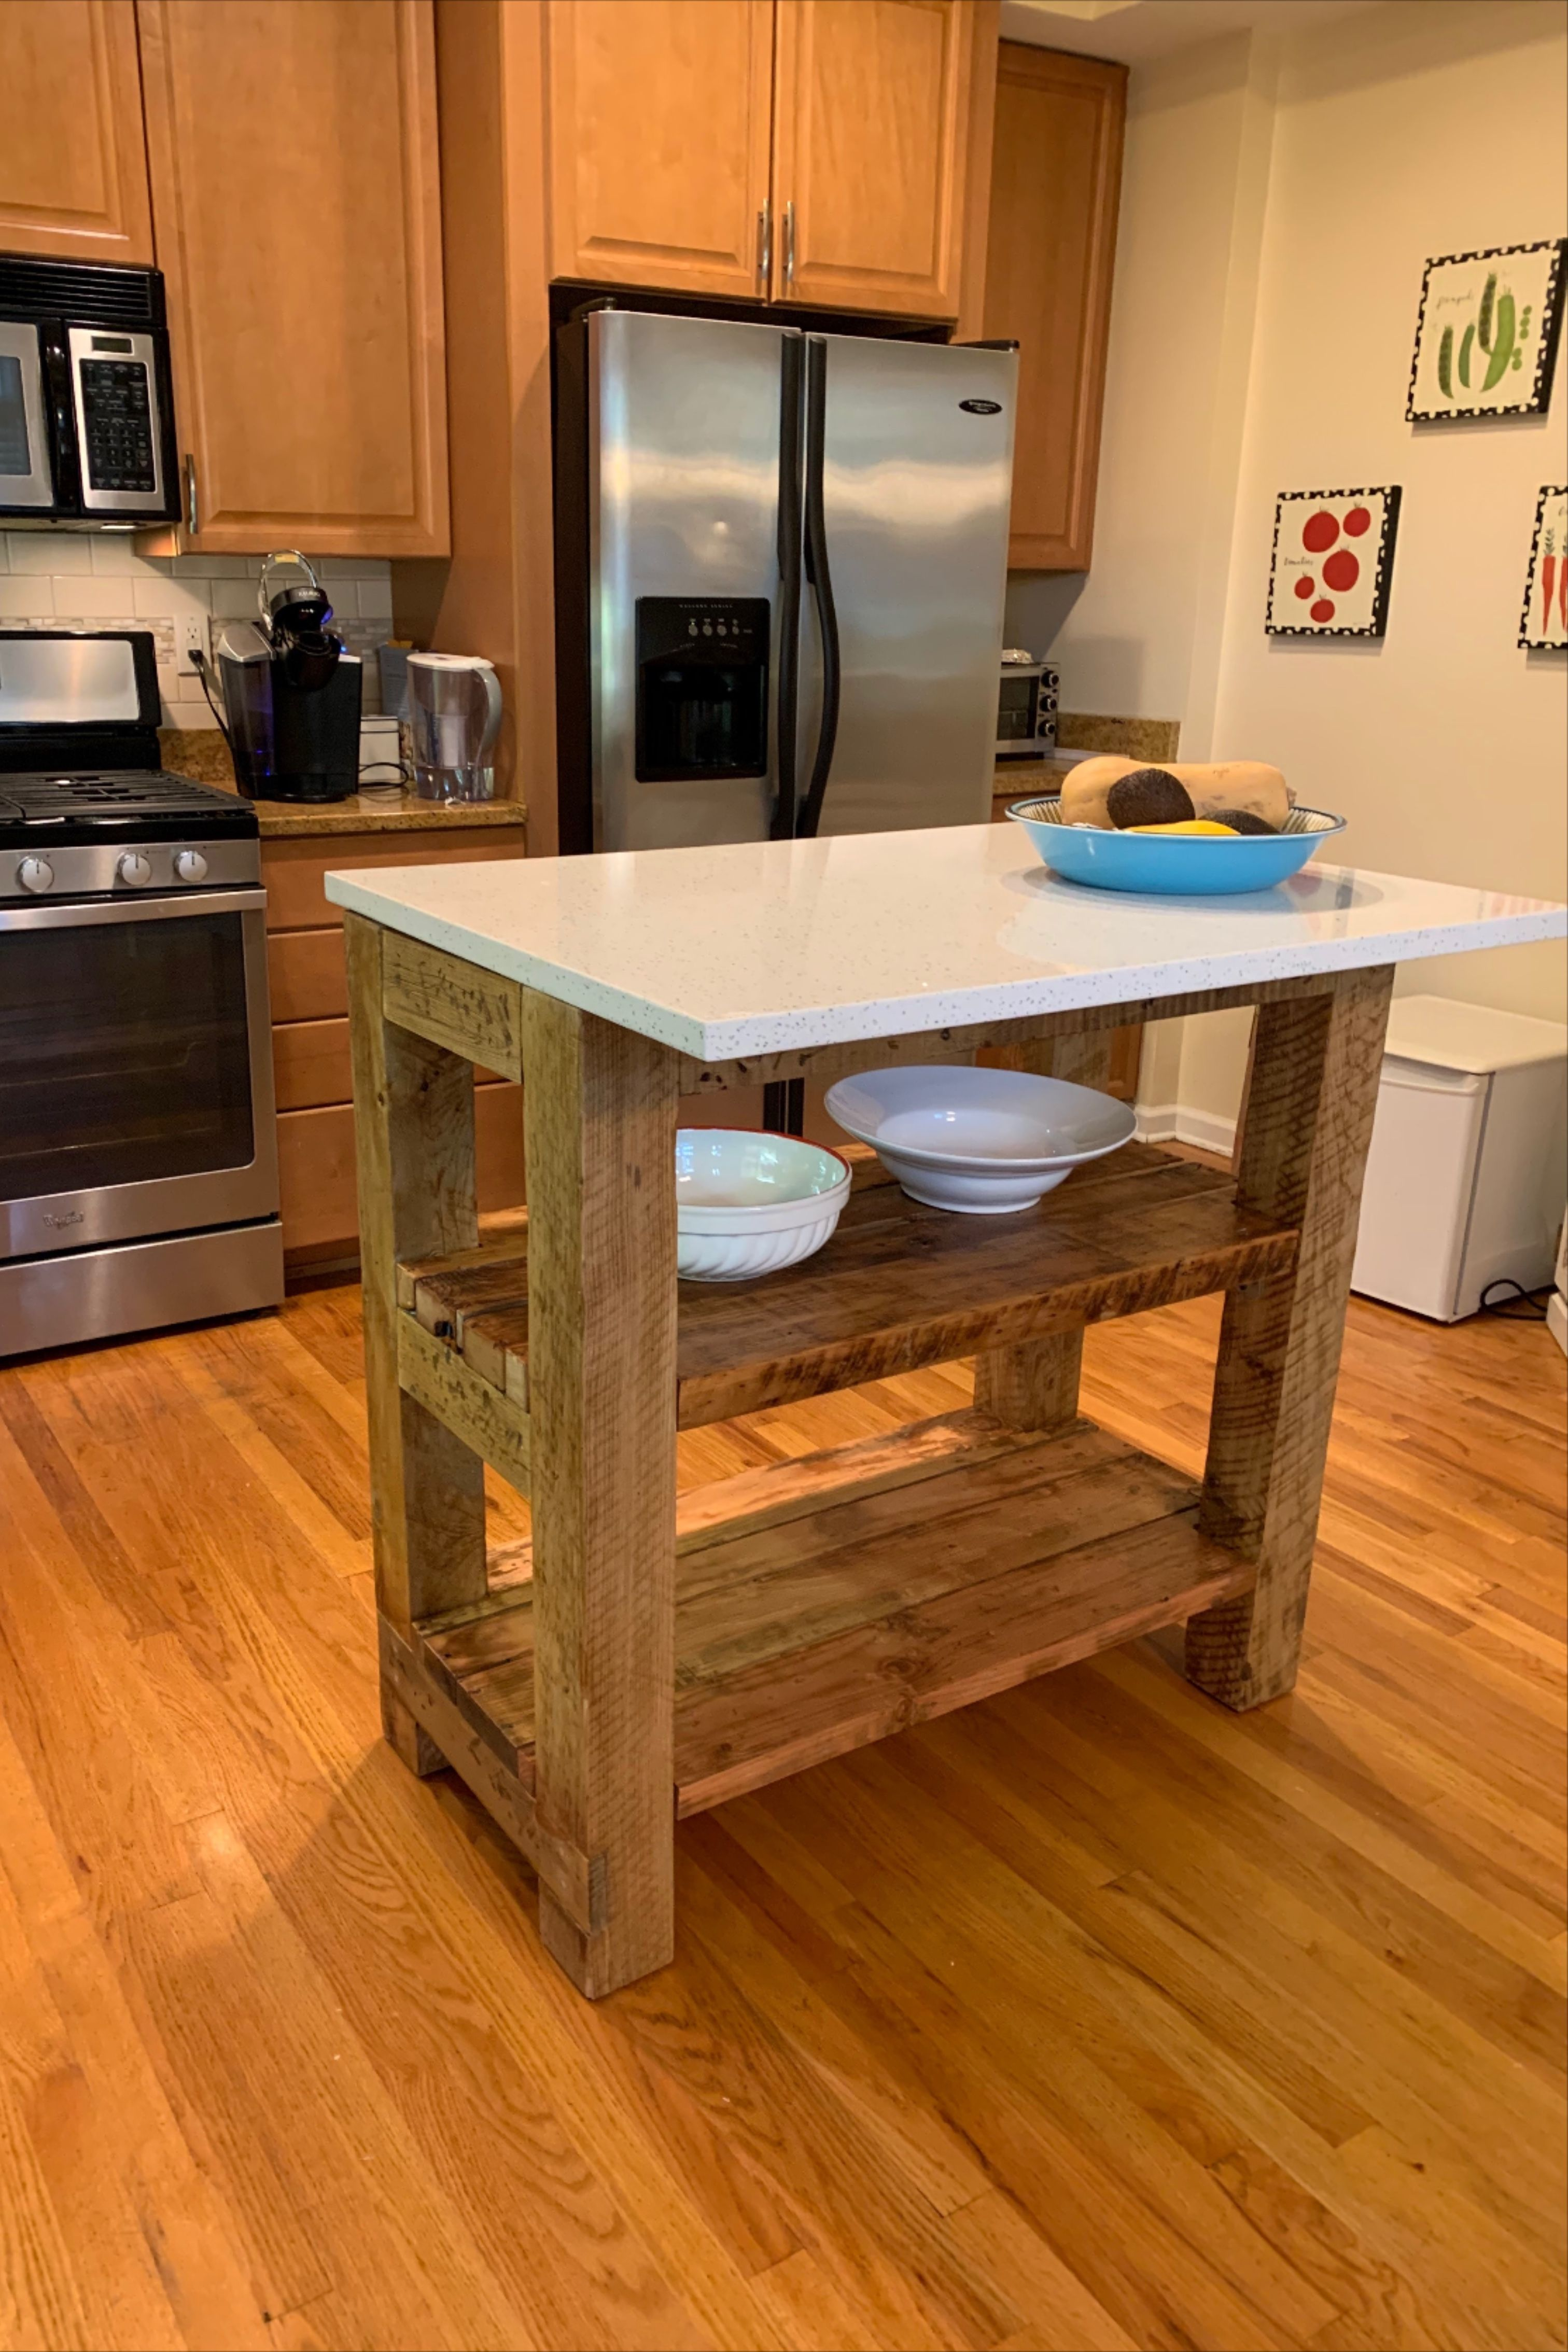 New Farm Table For Beach House In Nj The Lumber Comes From A 100 Year Old Home Transformed Into A New Farm Table Kitche In 2020 Farm Table Quartz Countertops Kitchen